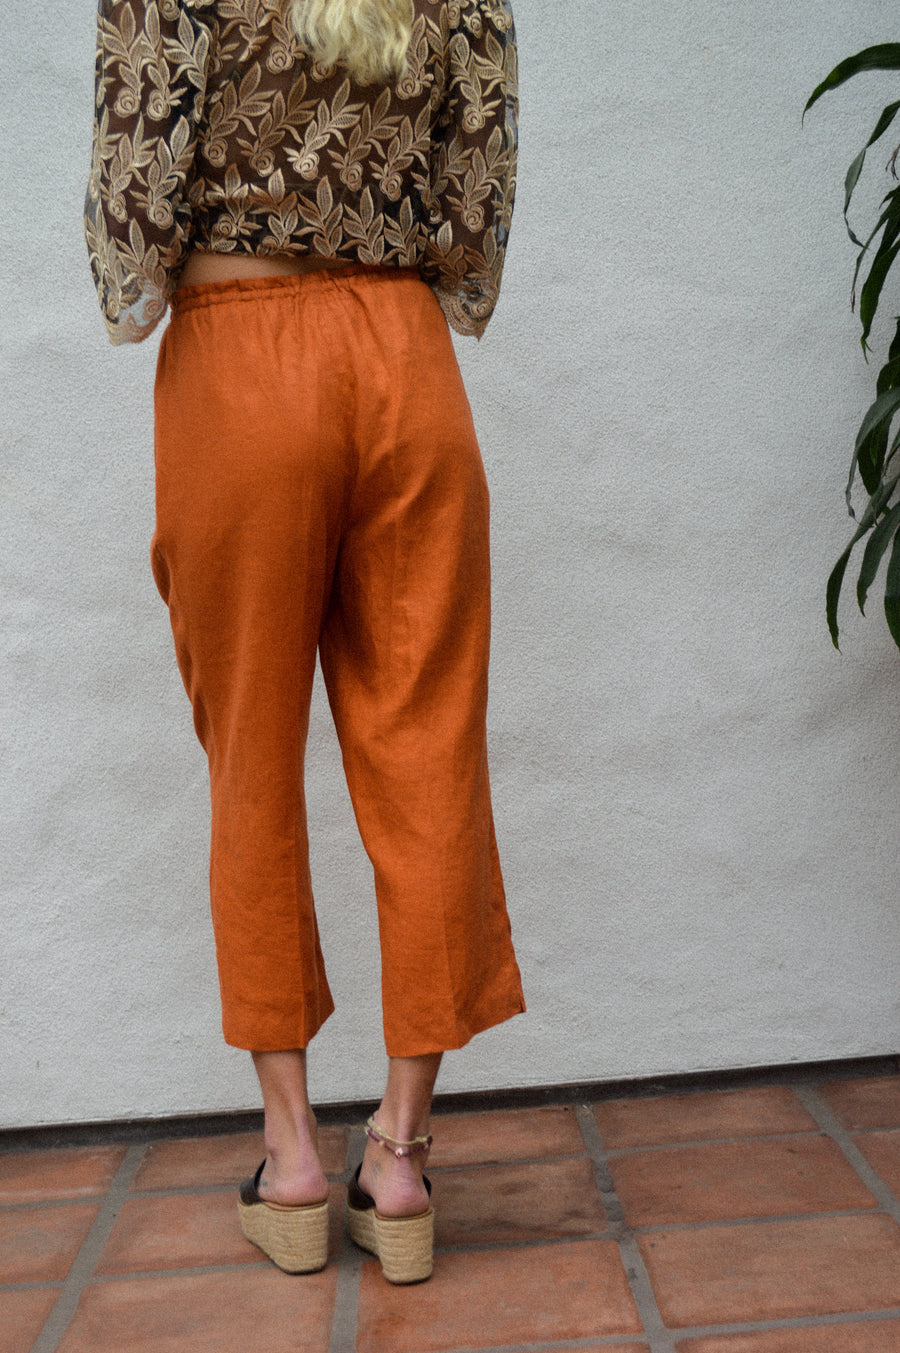 Sienna Orange Bohemian Linen Pants || bohemian clothing, beach clothing, comfy pants, hippie pants, linen pants, boho clothing, aesthetic